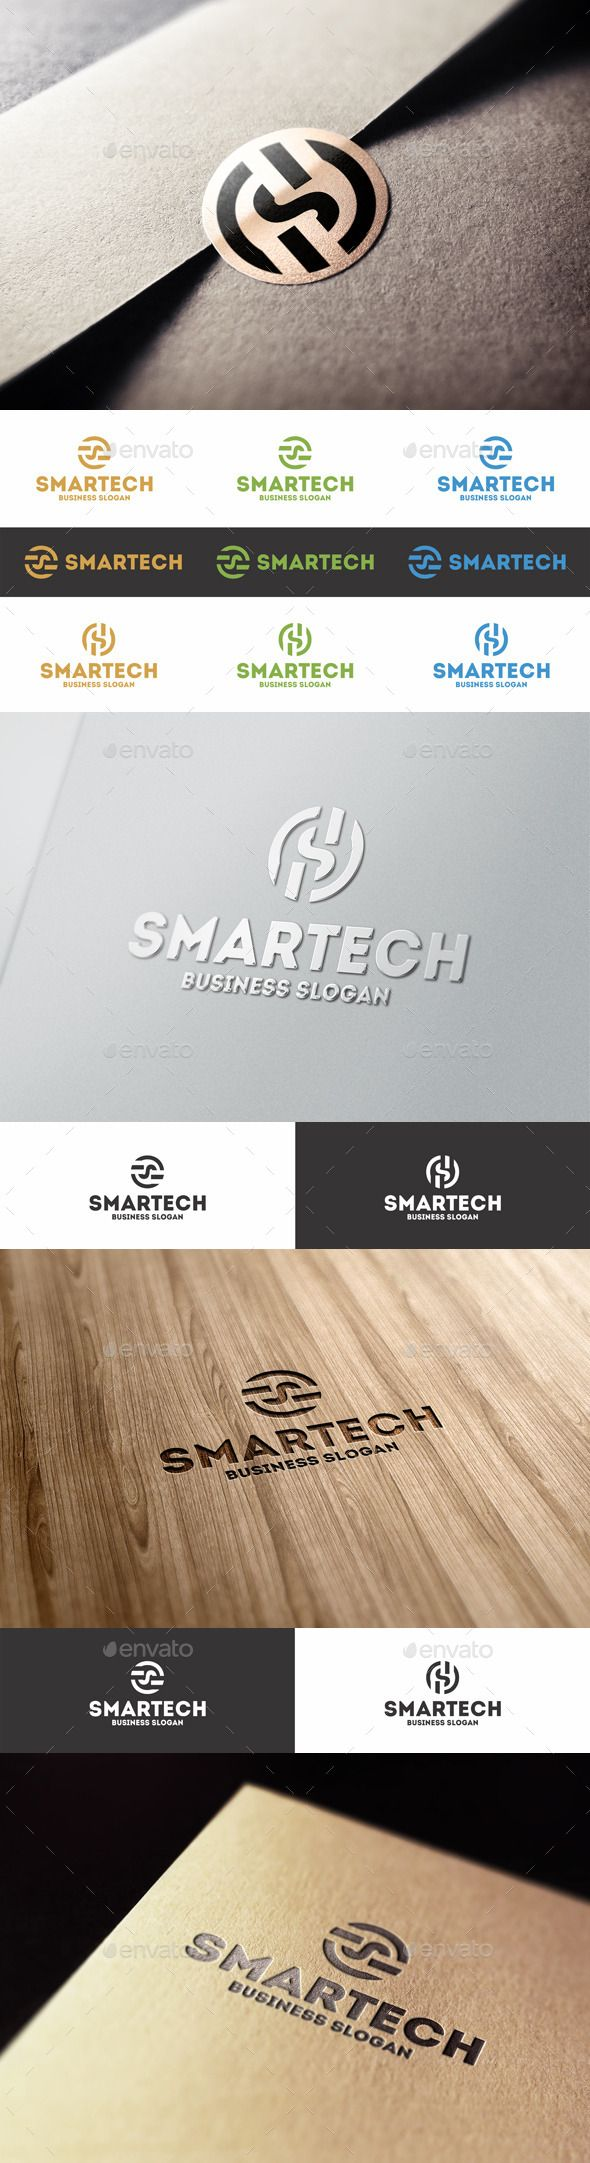 Smart Technology S Letter - Logo Design Template Vector #logotype Download it here: http://graphicriver.net/item/smart-technology-s-letter-logo/8888944?s_rank=181?ref=nexion